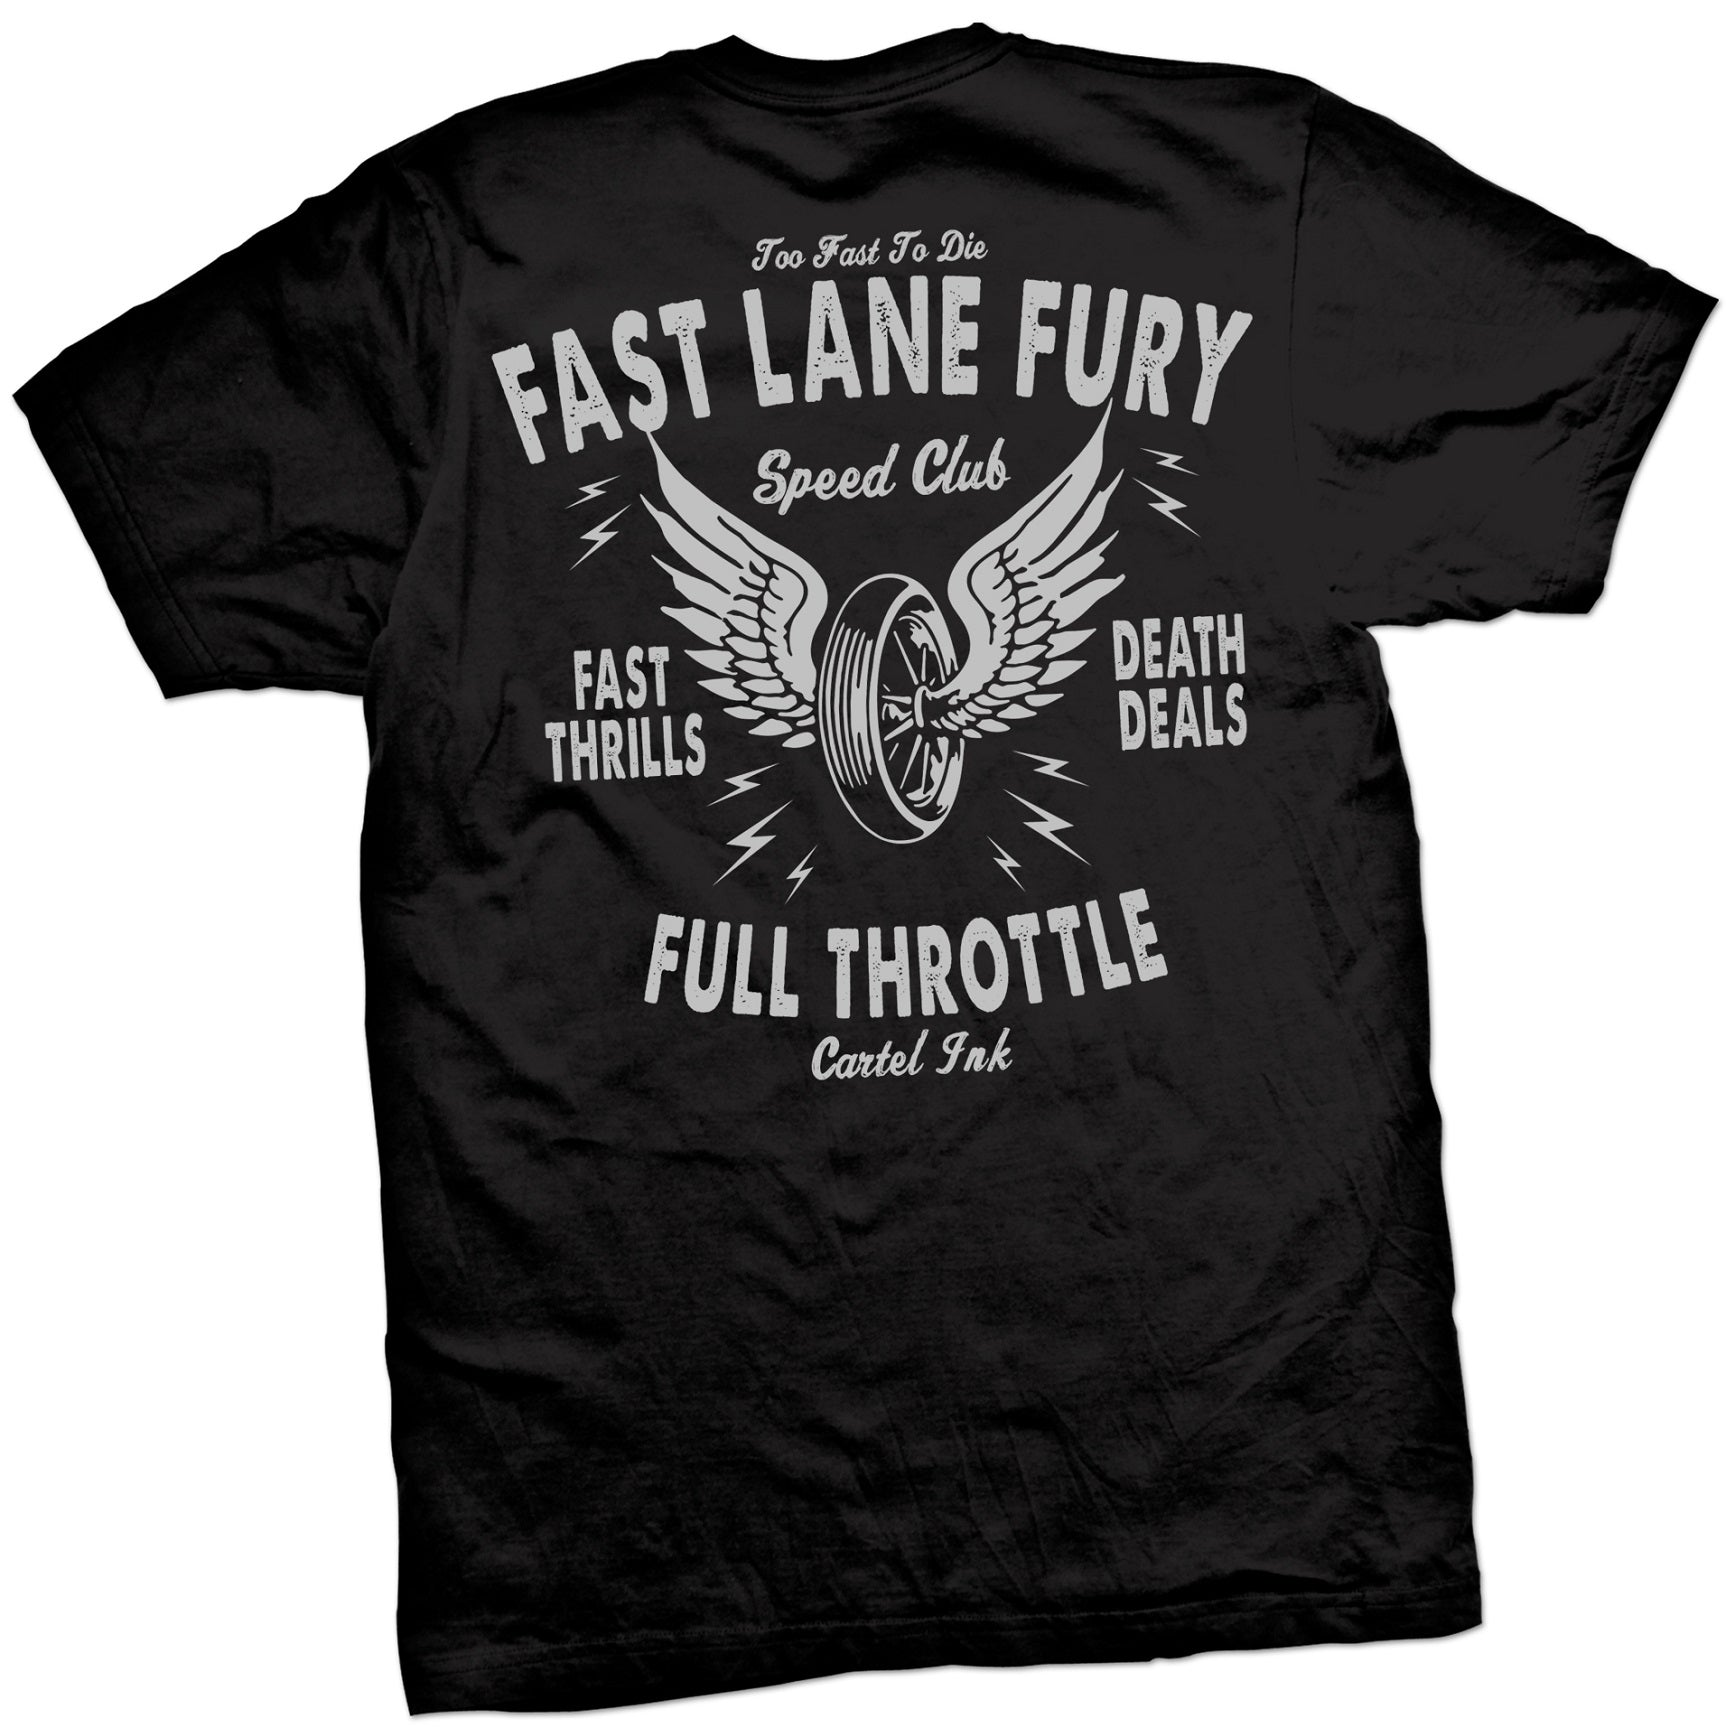 The FAST LANE FURY Tee